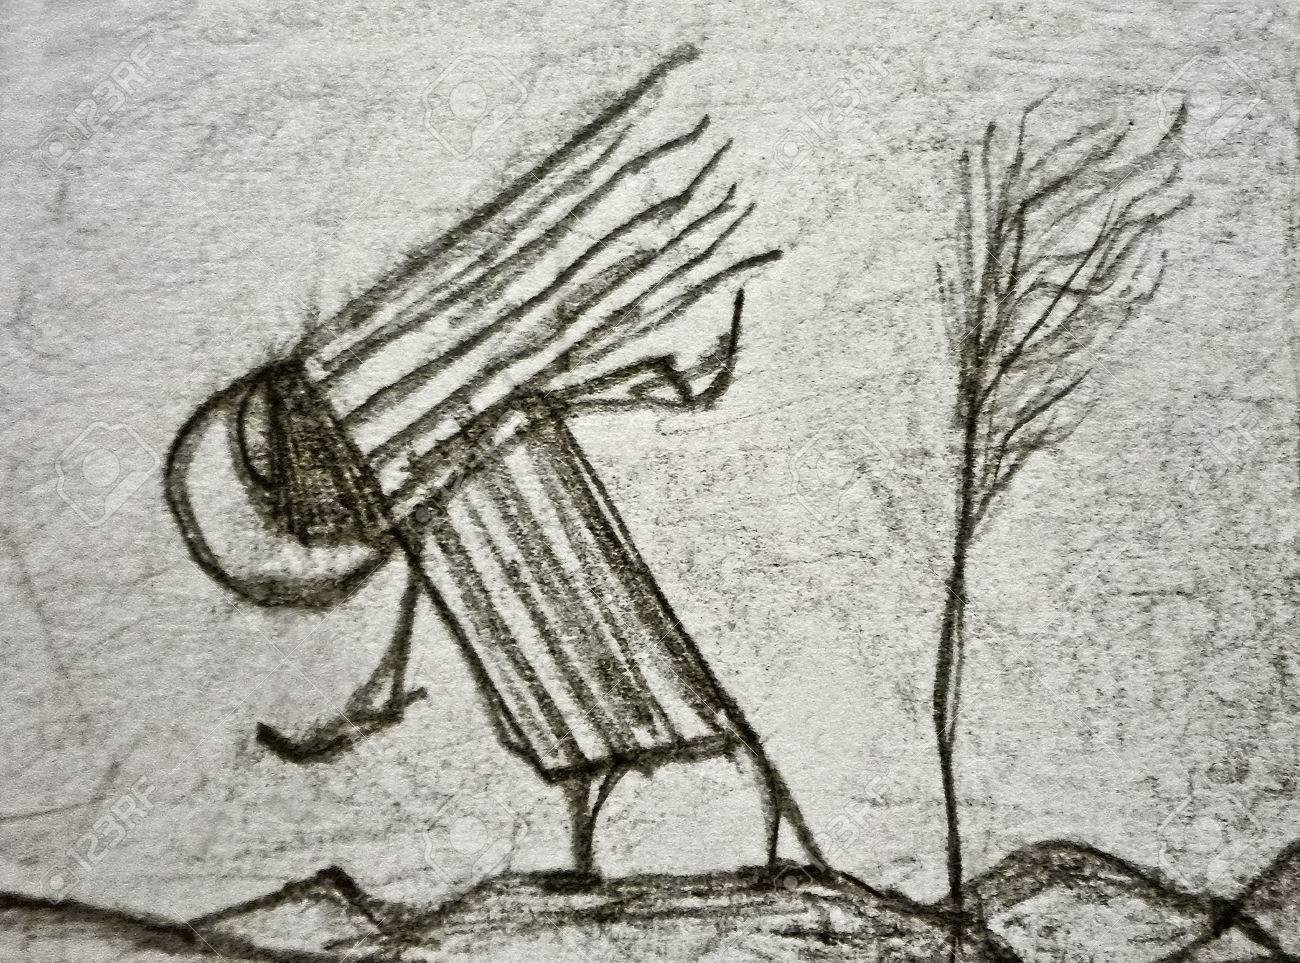 Pencil drawing artwork depicting an strange alien animal in a nature environment with mountains and a